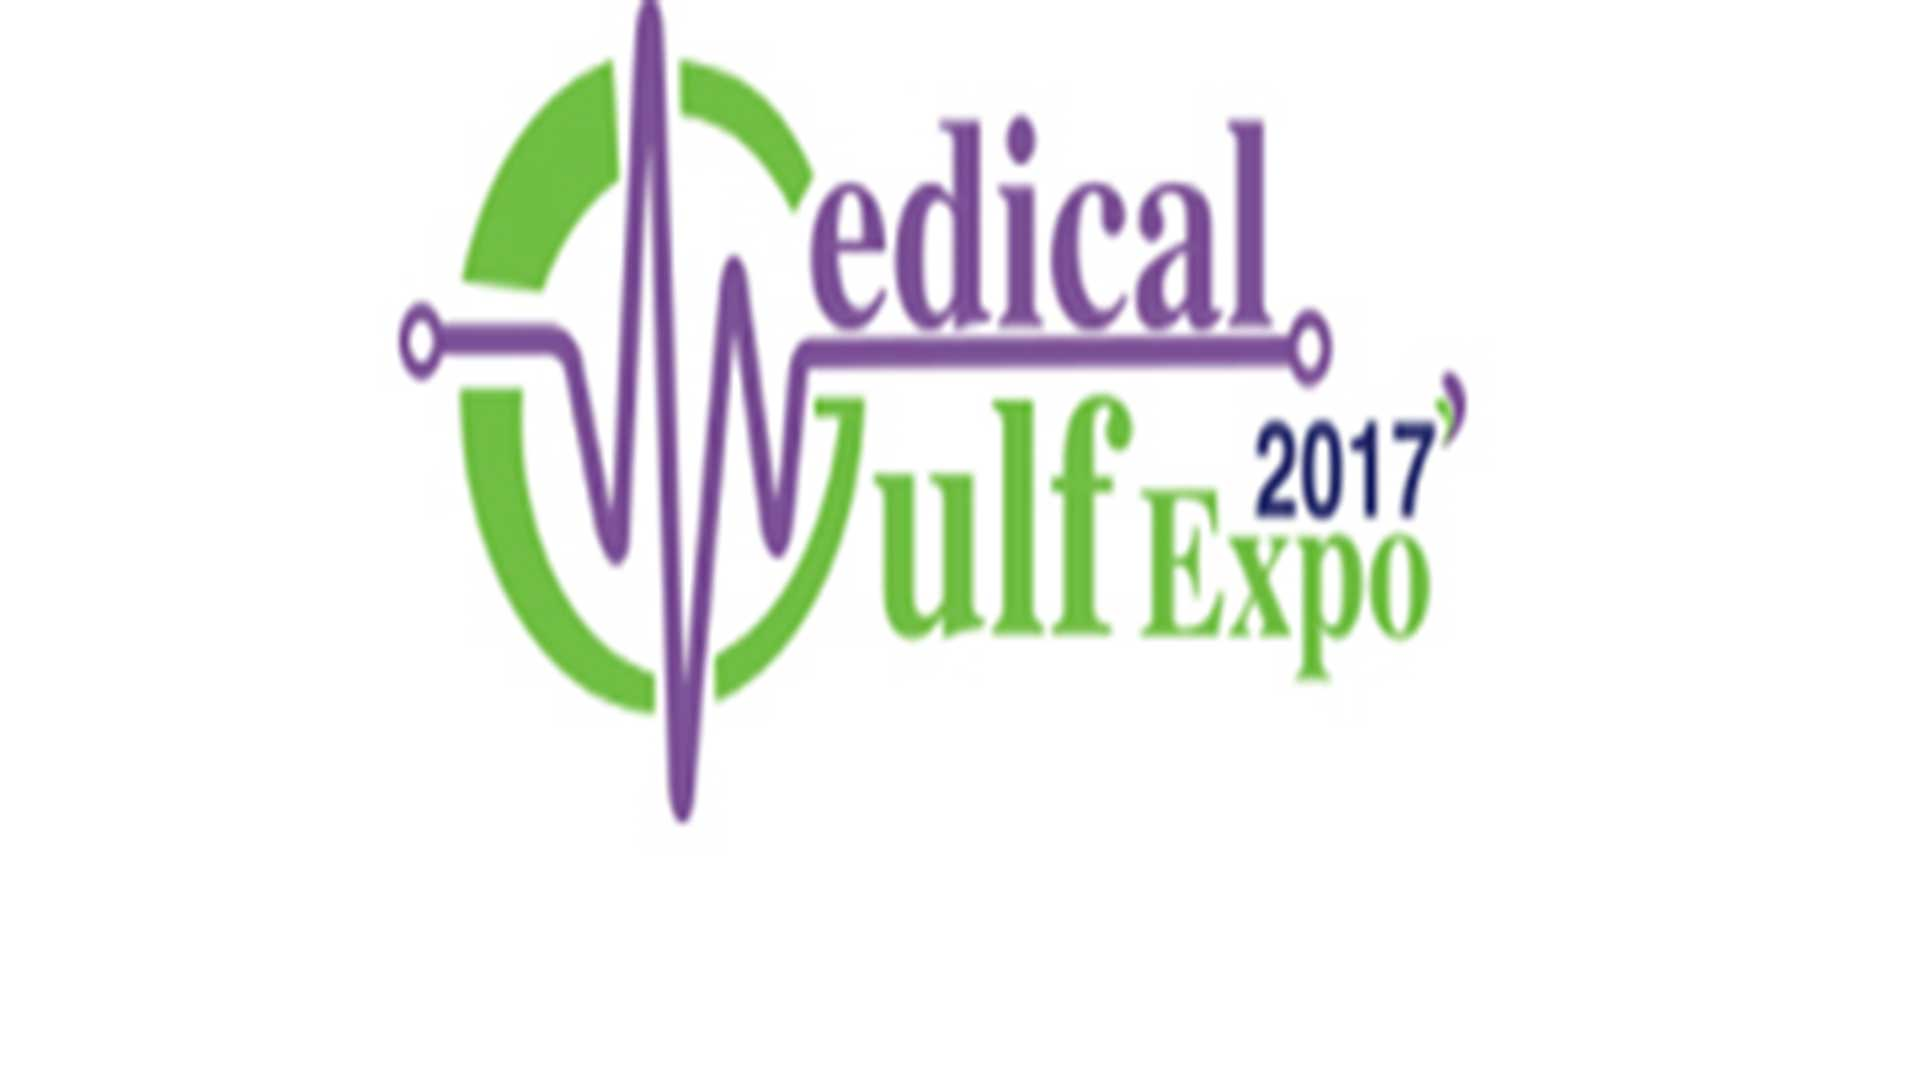 Gulf Medical and Dental Exhibition Fuarı 7-9 Kasım 2017'de..